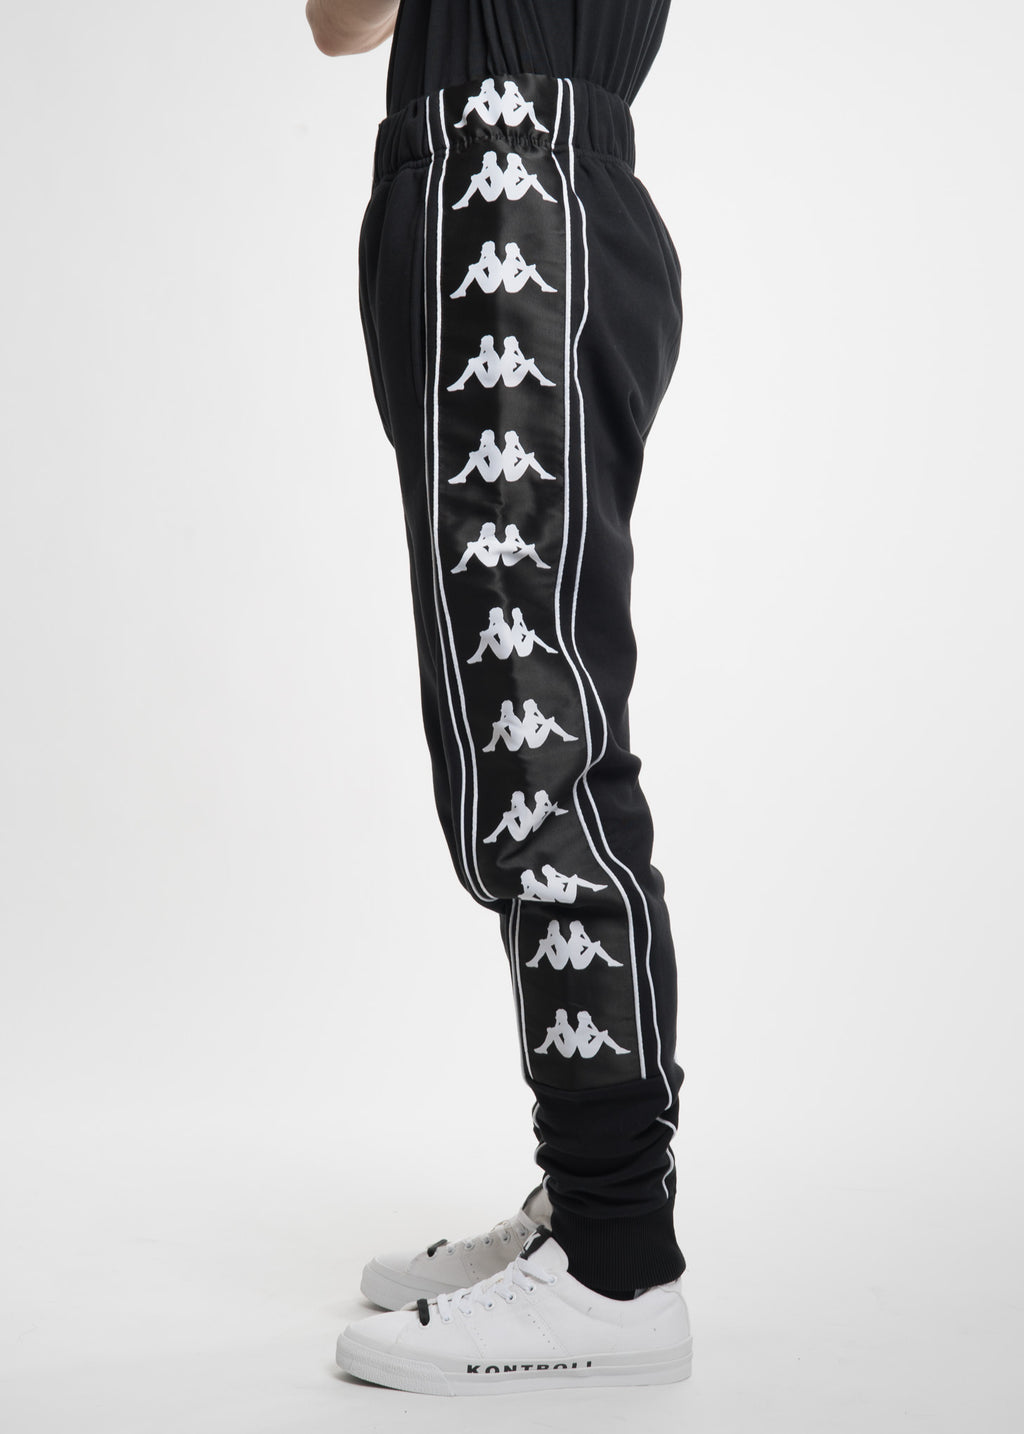 Black Banda Pants